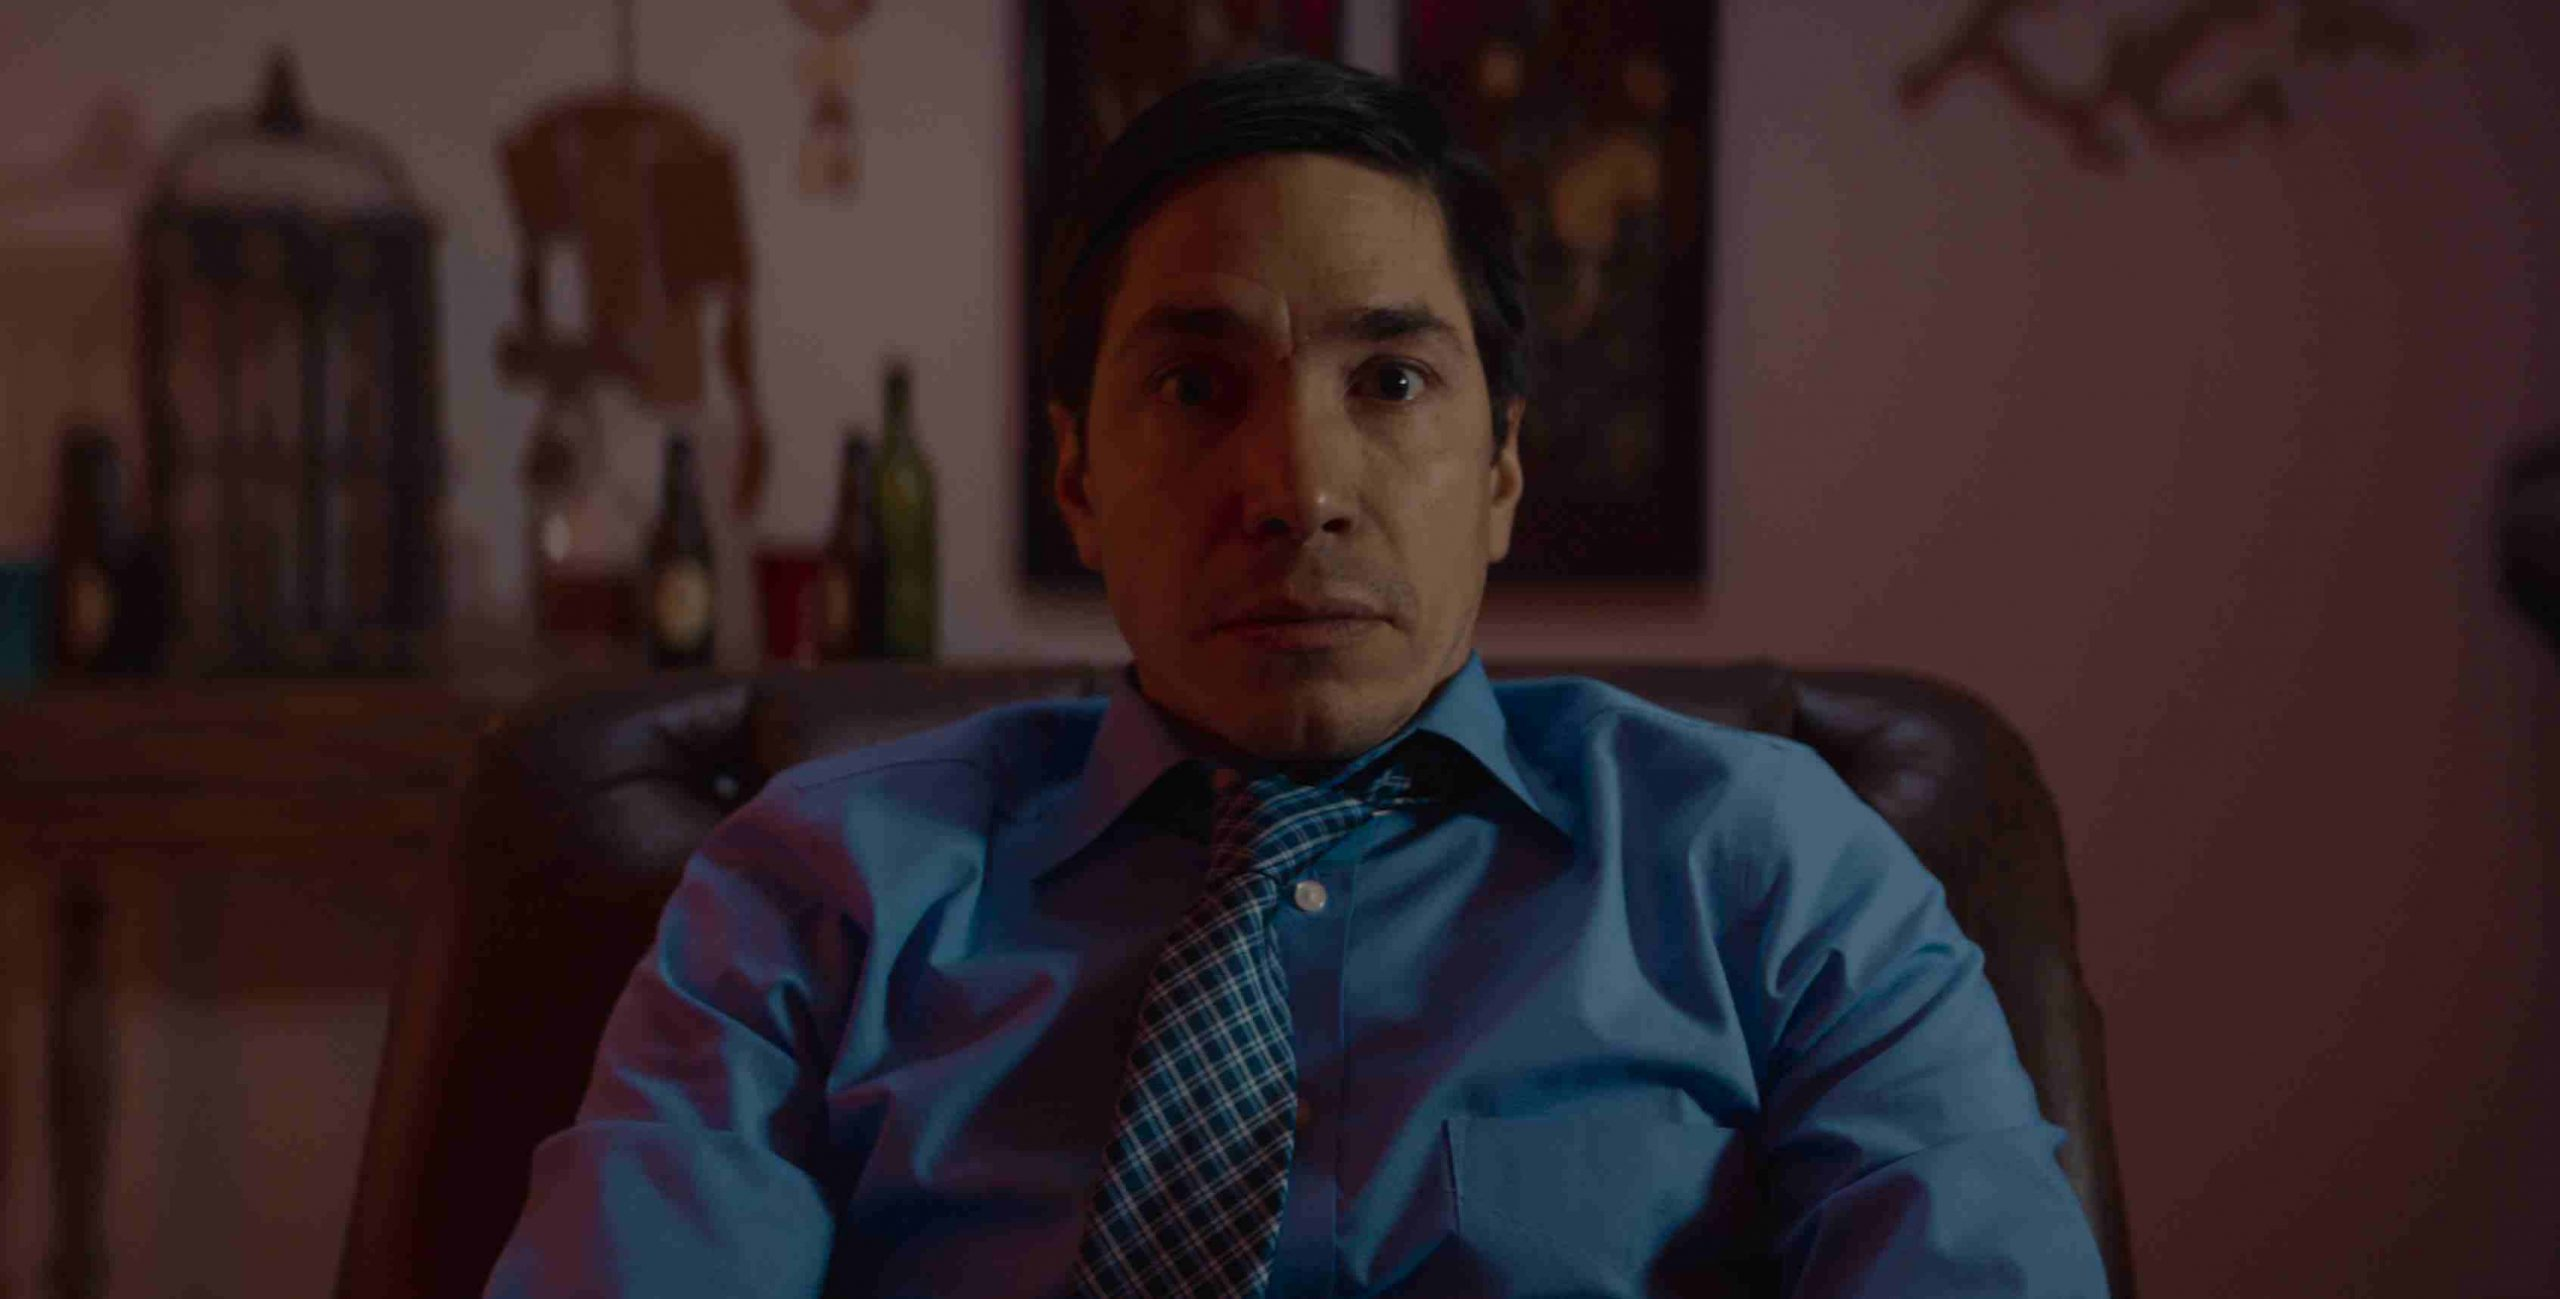 Mild-mannered insurance executive Justin Long undergoes reality-bending drug hallucinations in The Wave (2019)